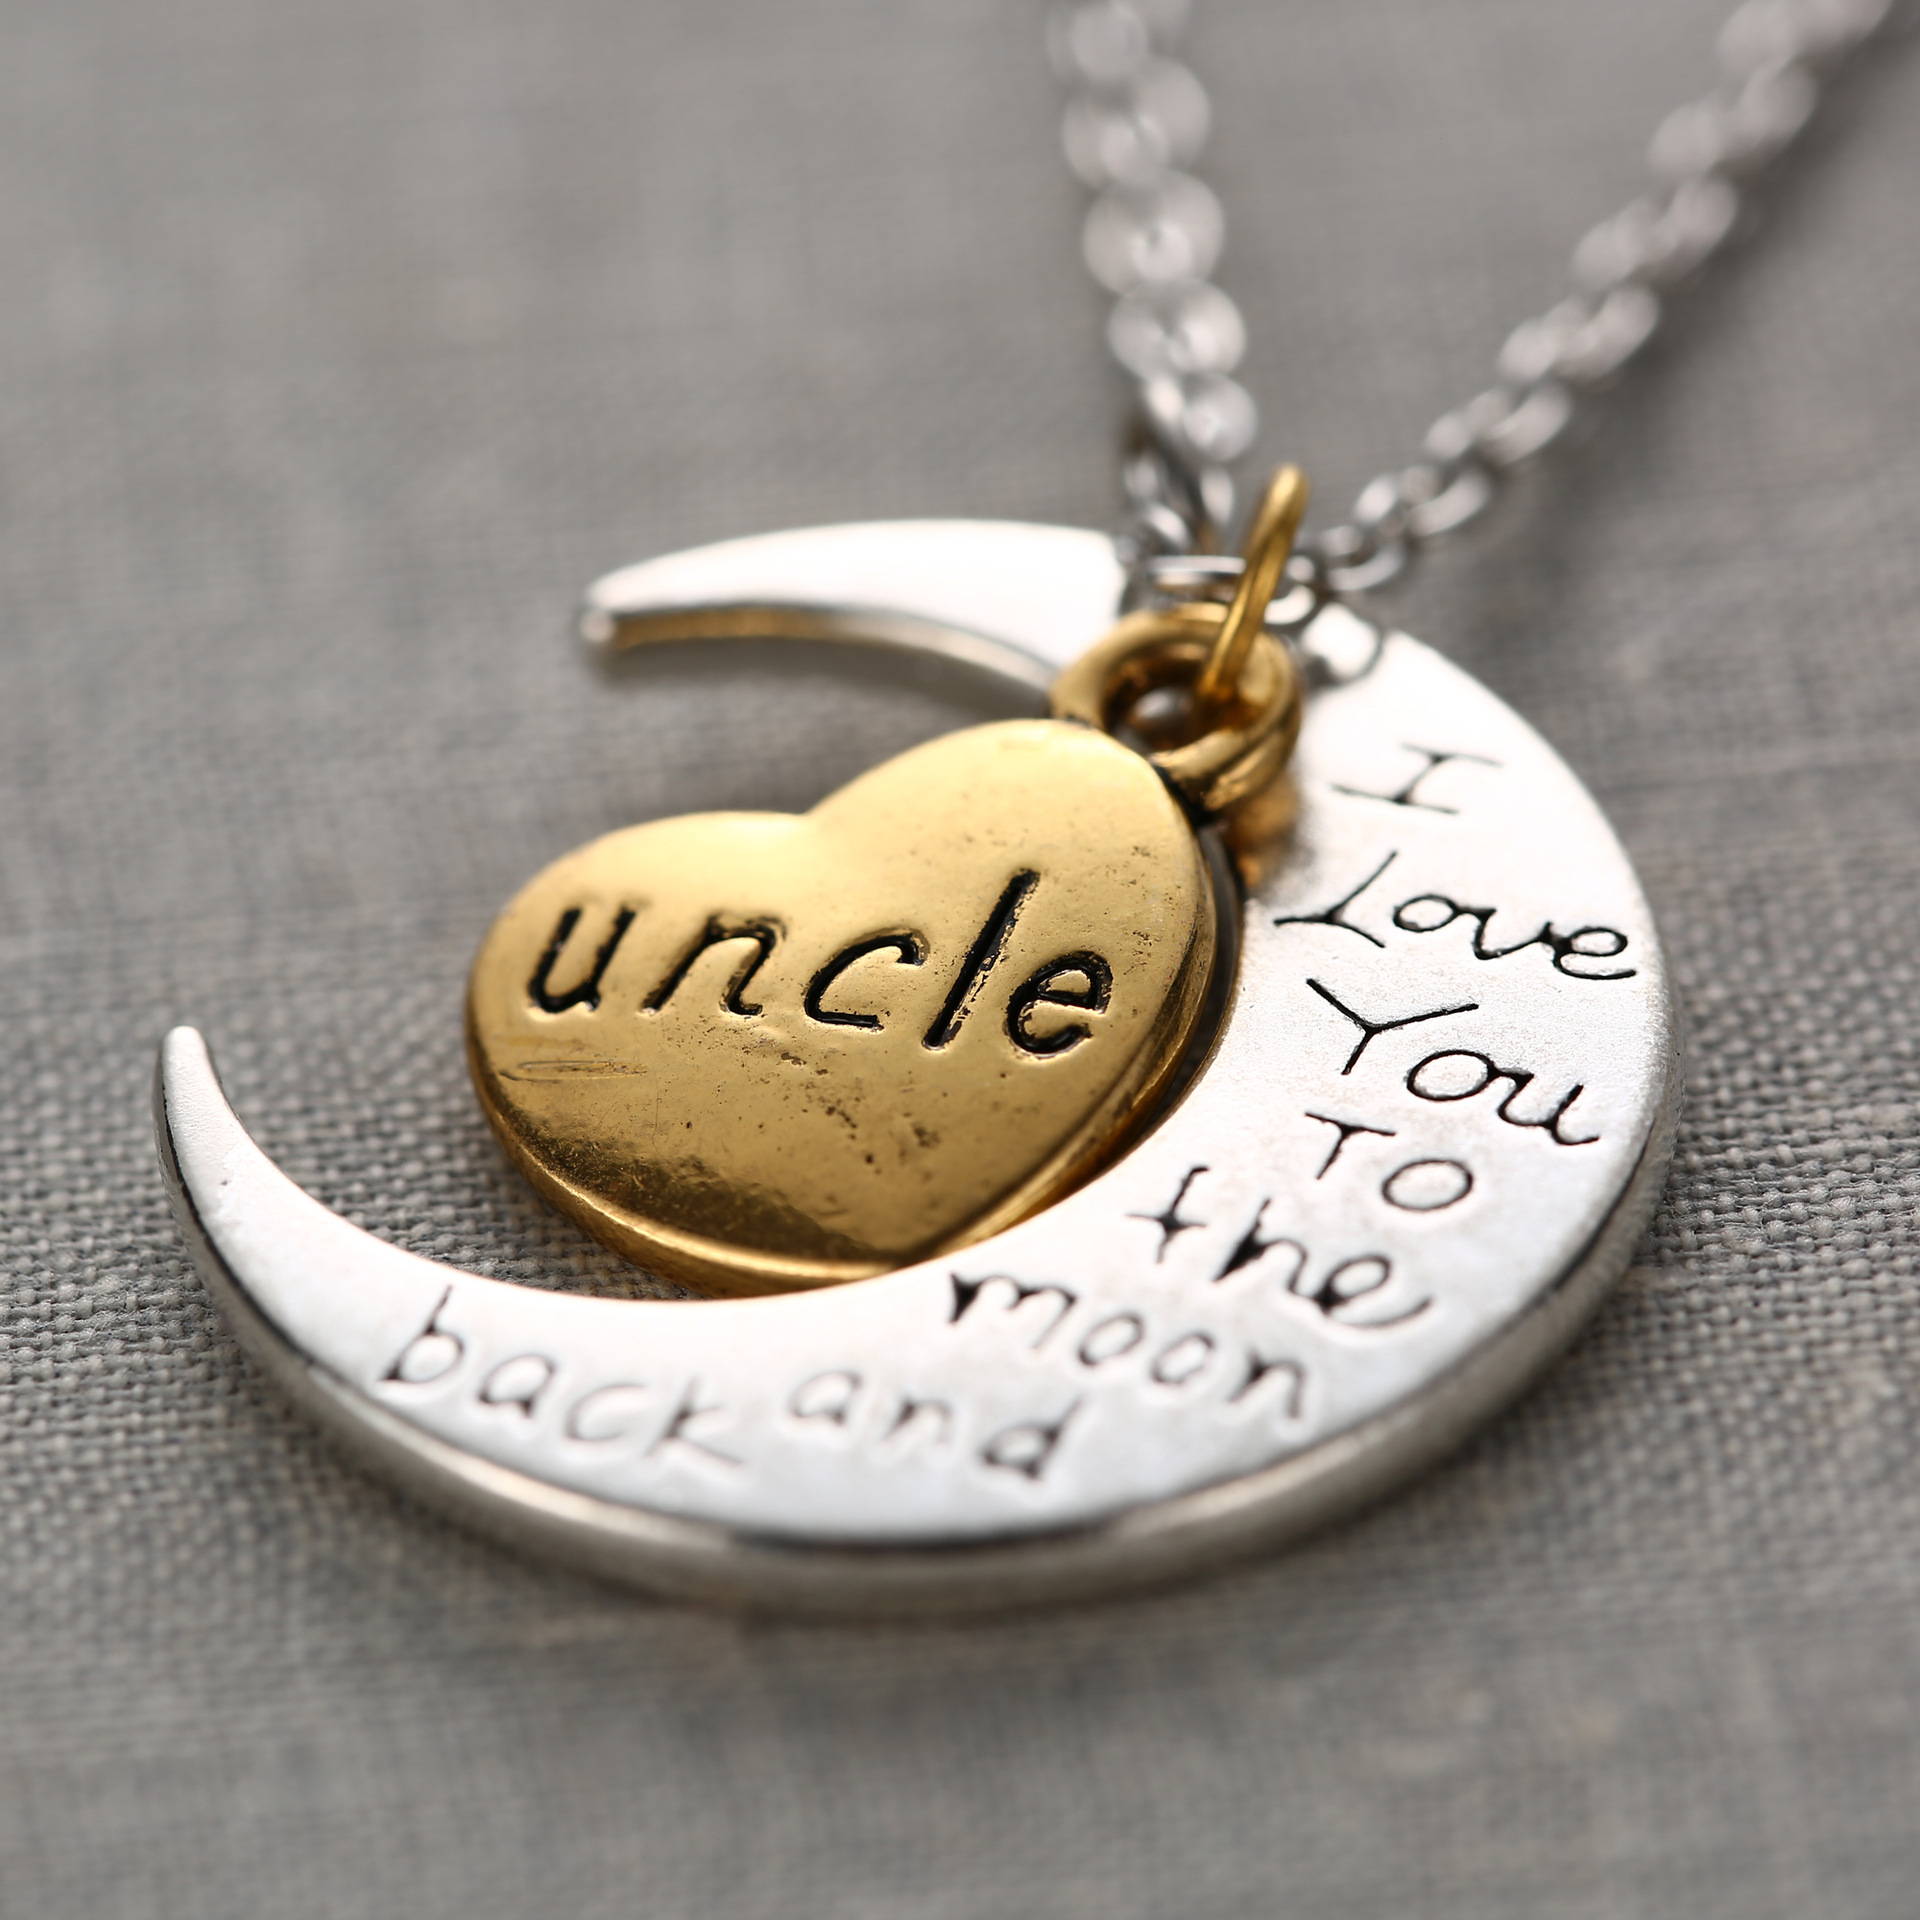 Fashion New Letter <font><b>Engraved</b></font> <font><b>Moon</b></font> Pendant Necklace For Family Gifts Gold Plated <font><b>Love</b></font> <font><b>Heart</b></font> Chain Family Member Necklace Chokers